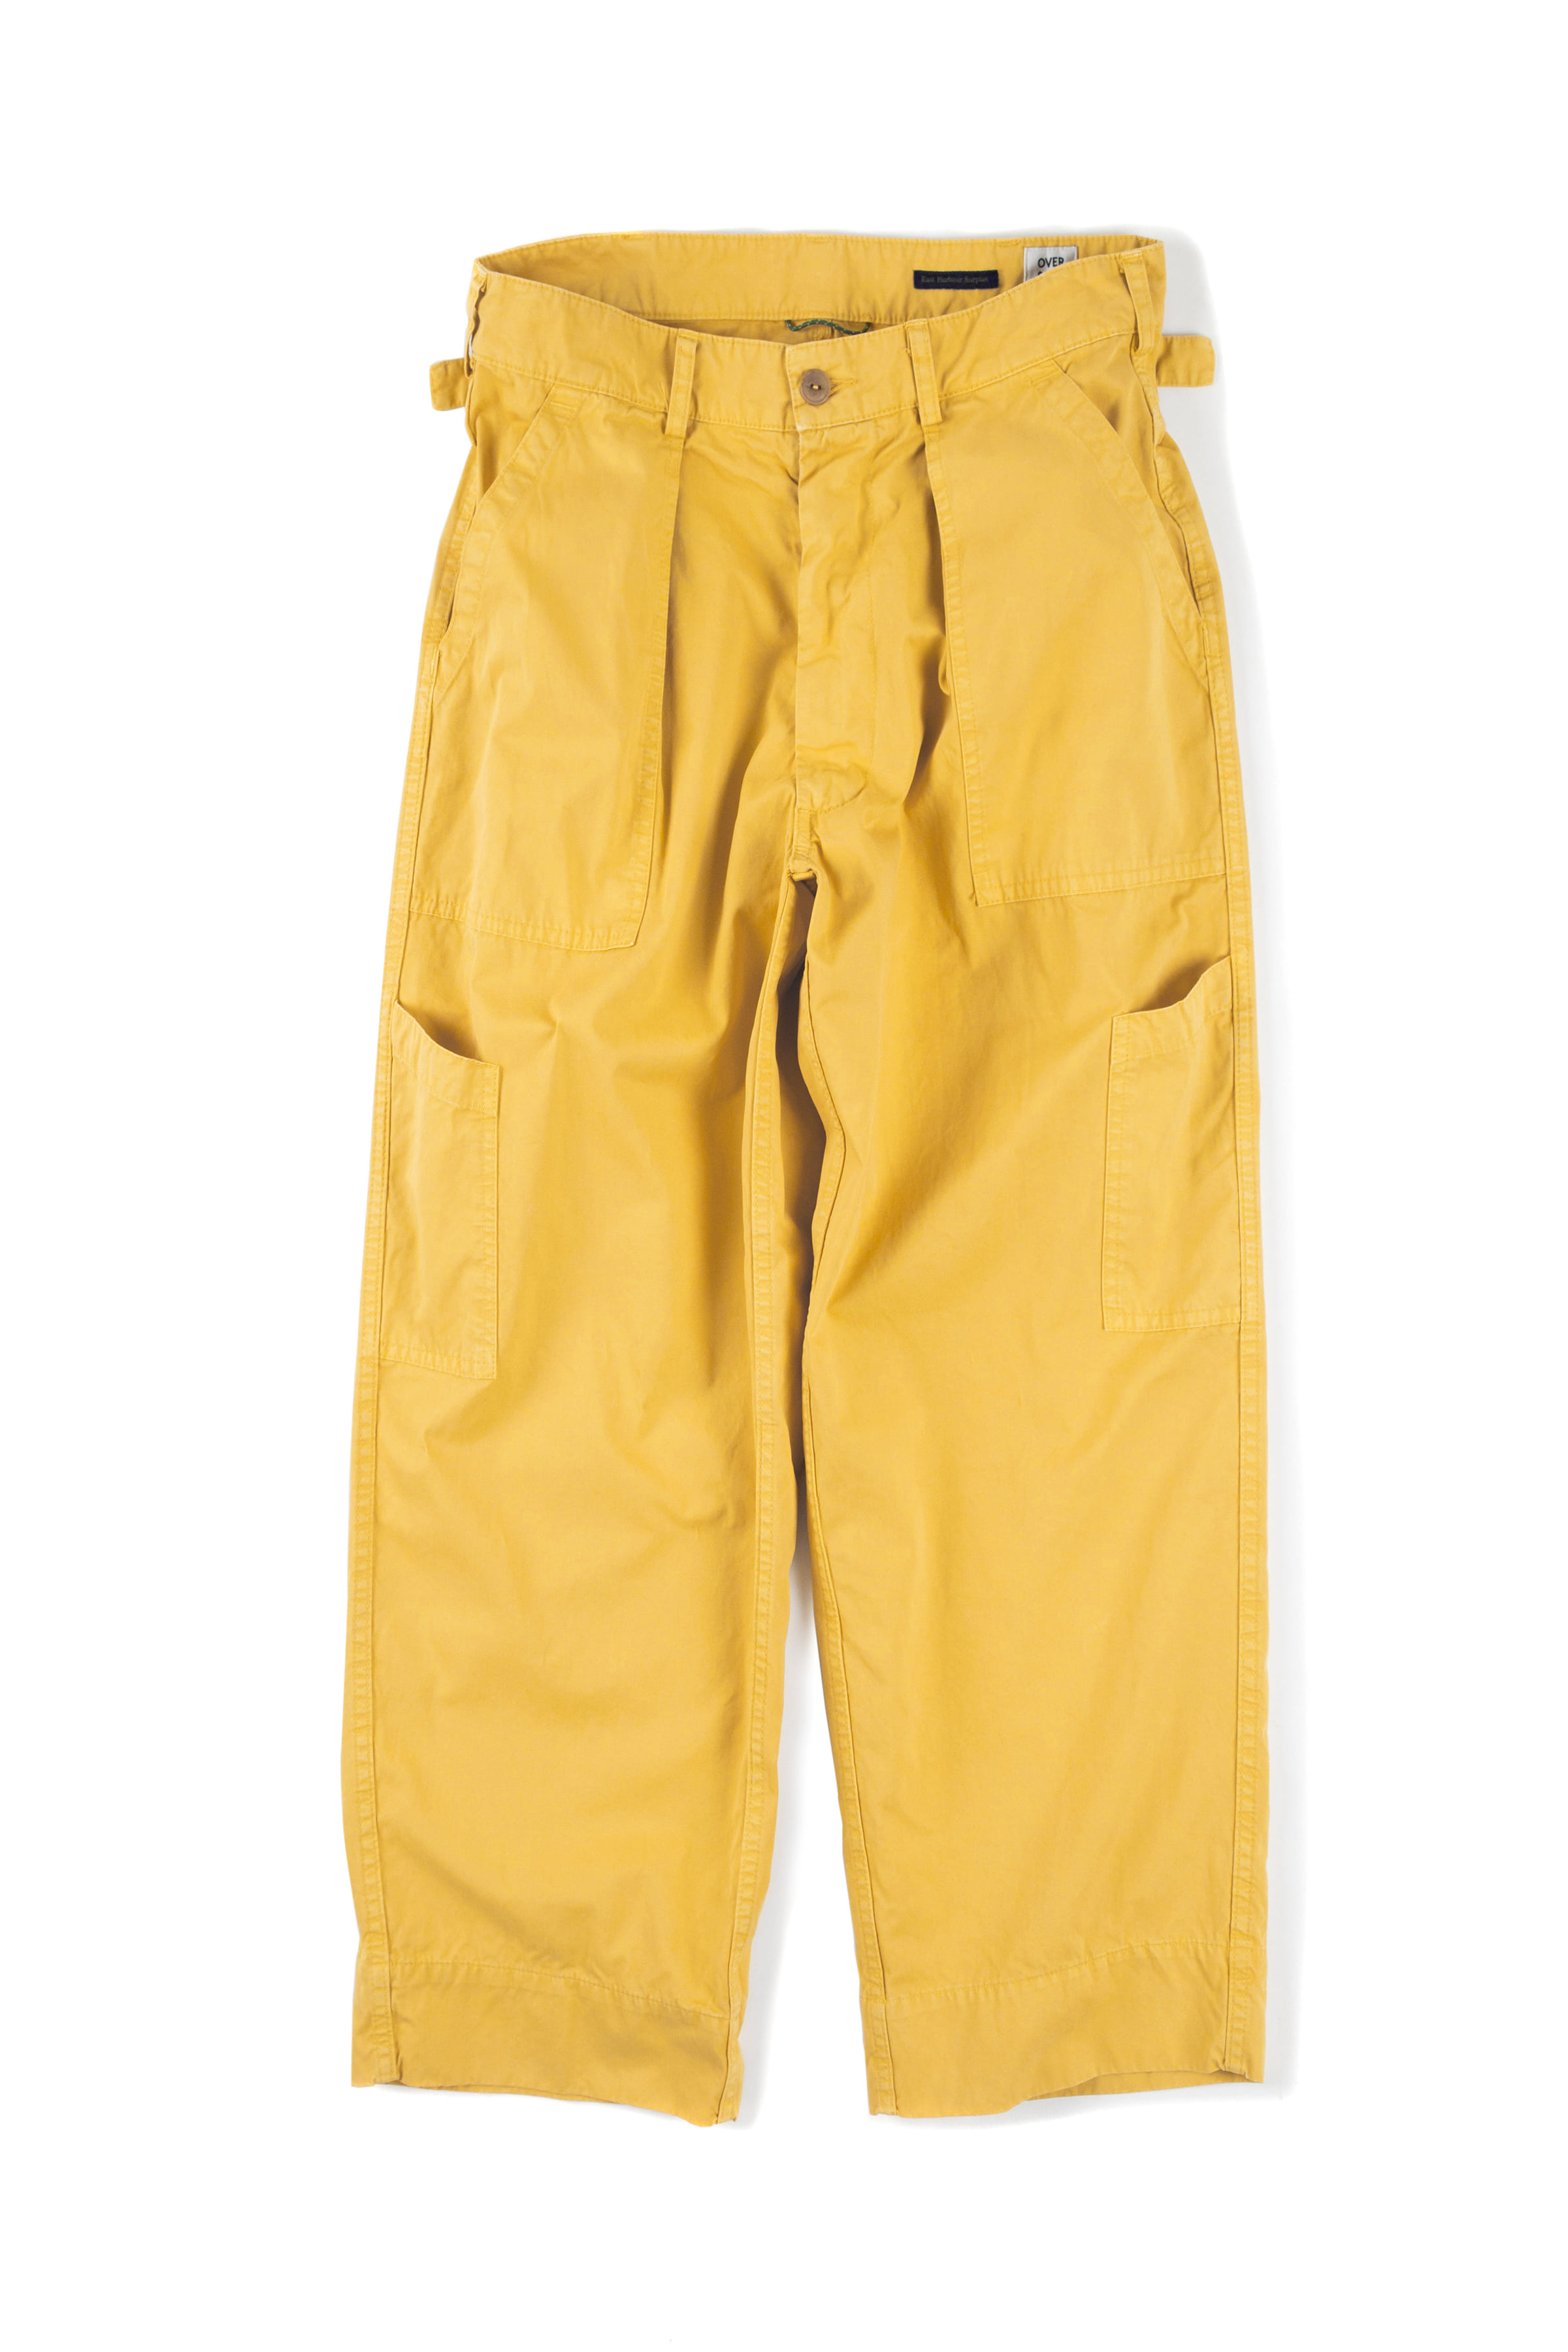 East Harbour Surplus : Fatigue Pants (Yellow)